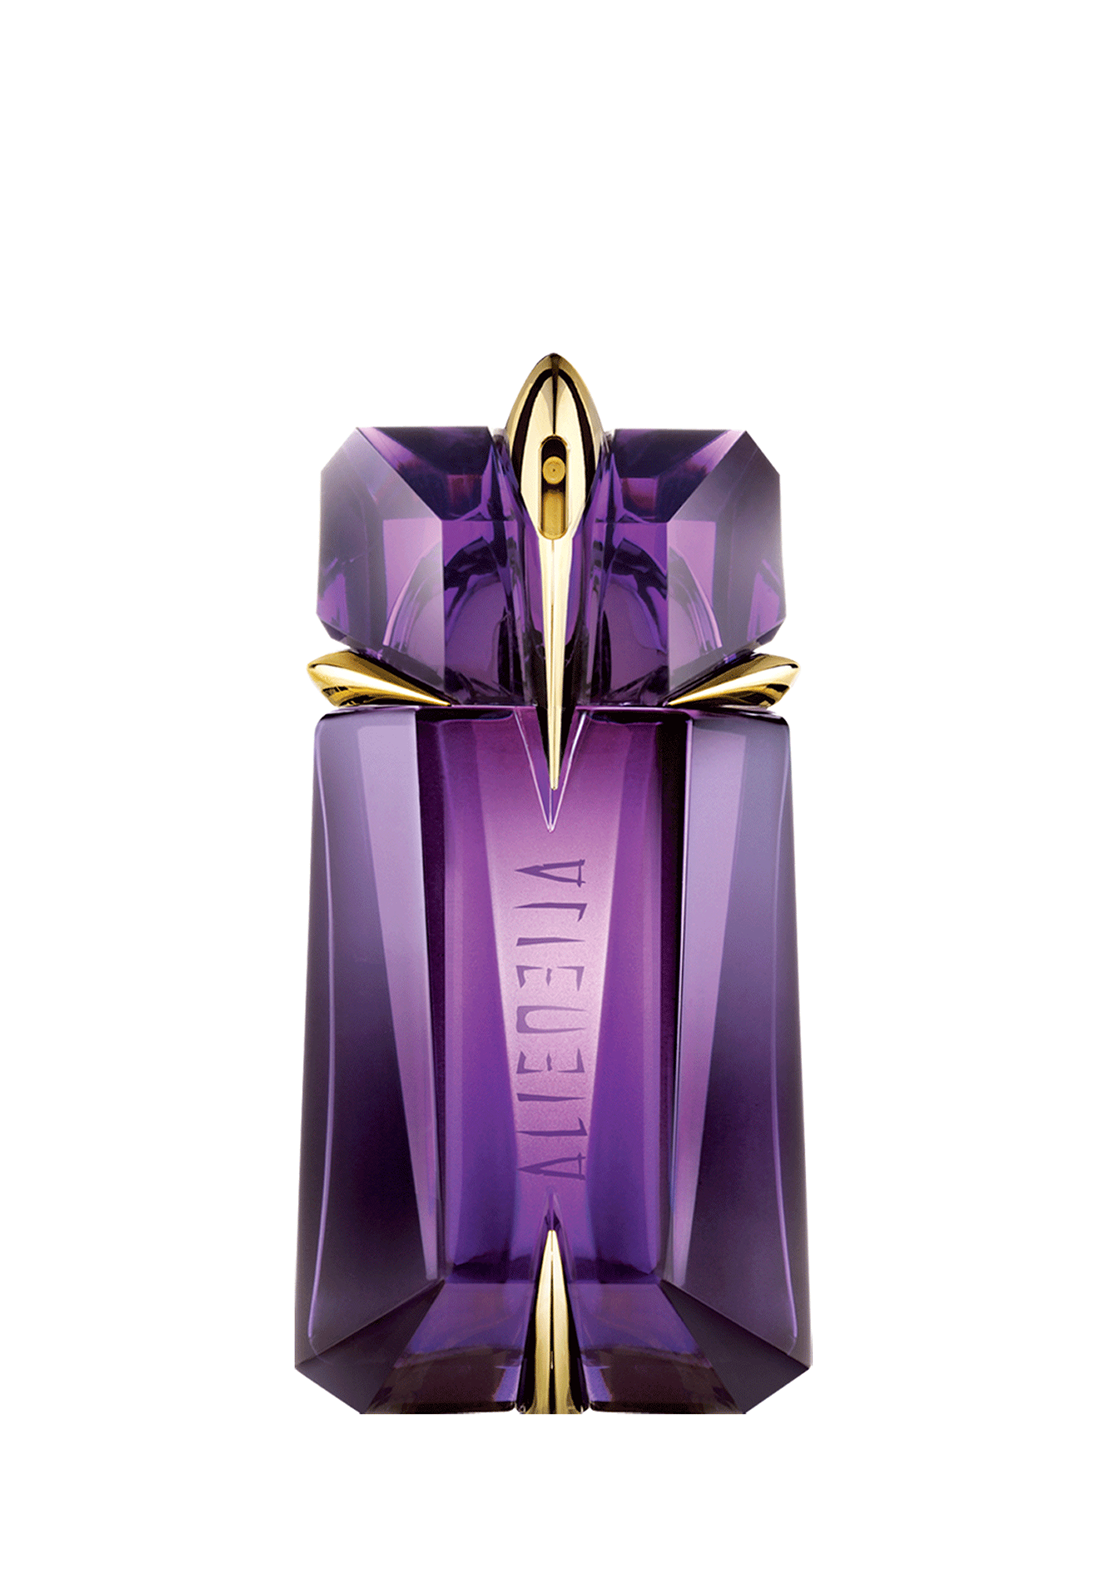 Thierry Mugler Alien Eau De Parfum 30ml Refillable